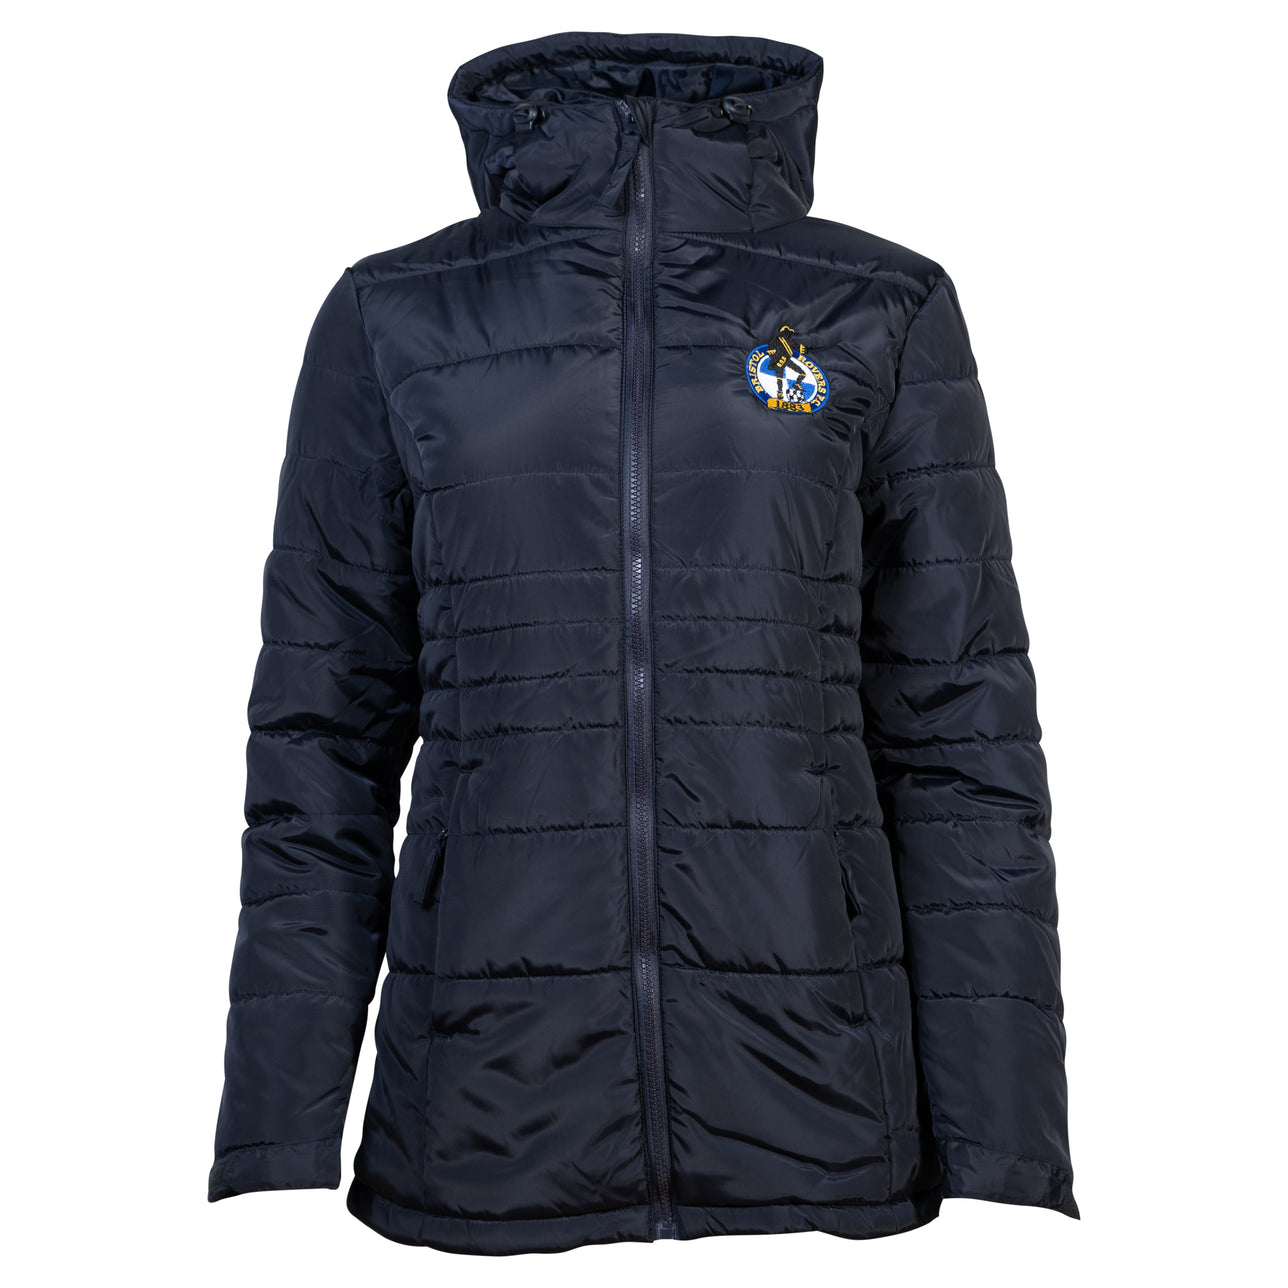 Ladies Bristol Rovers Jacket